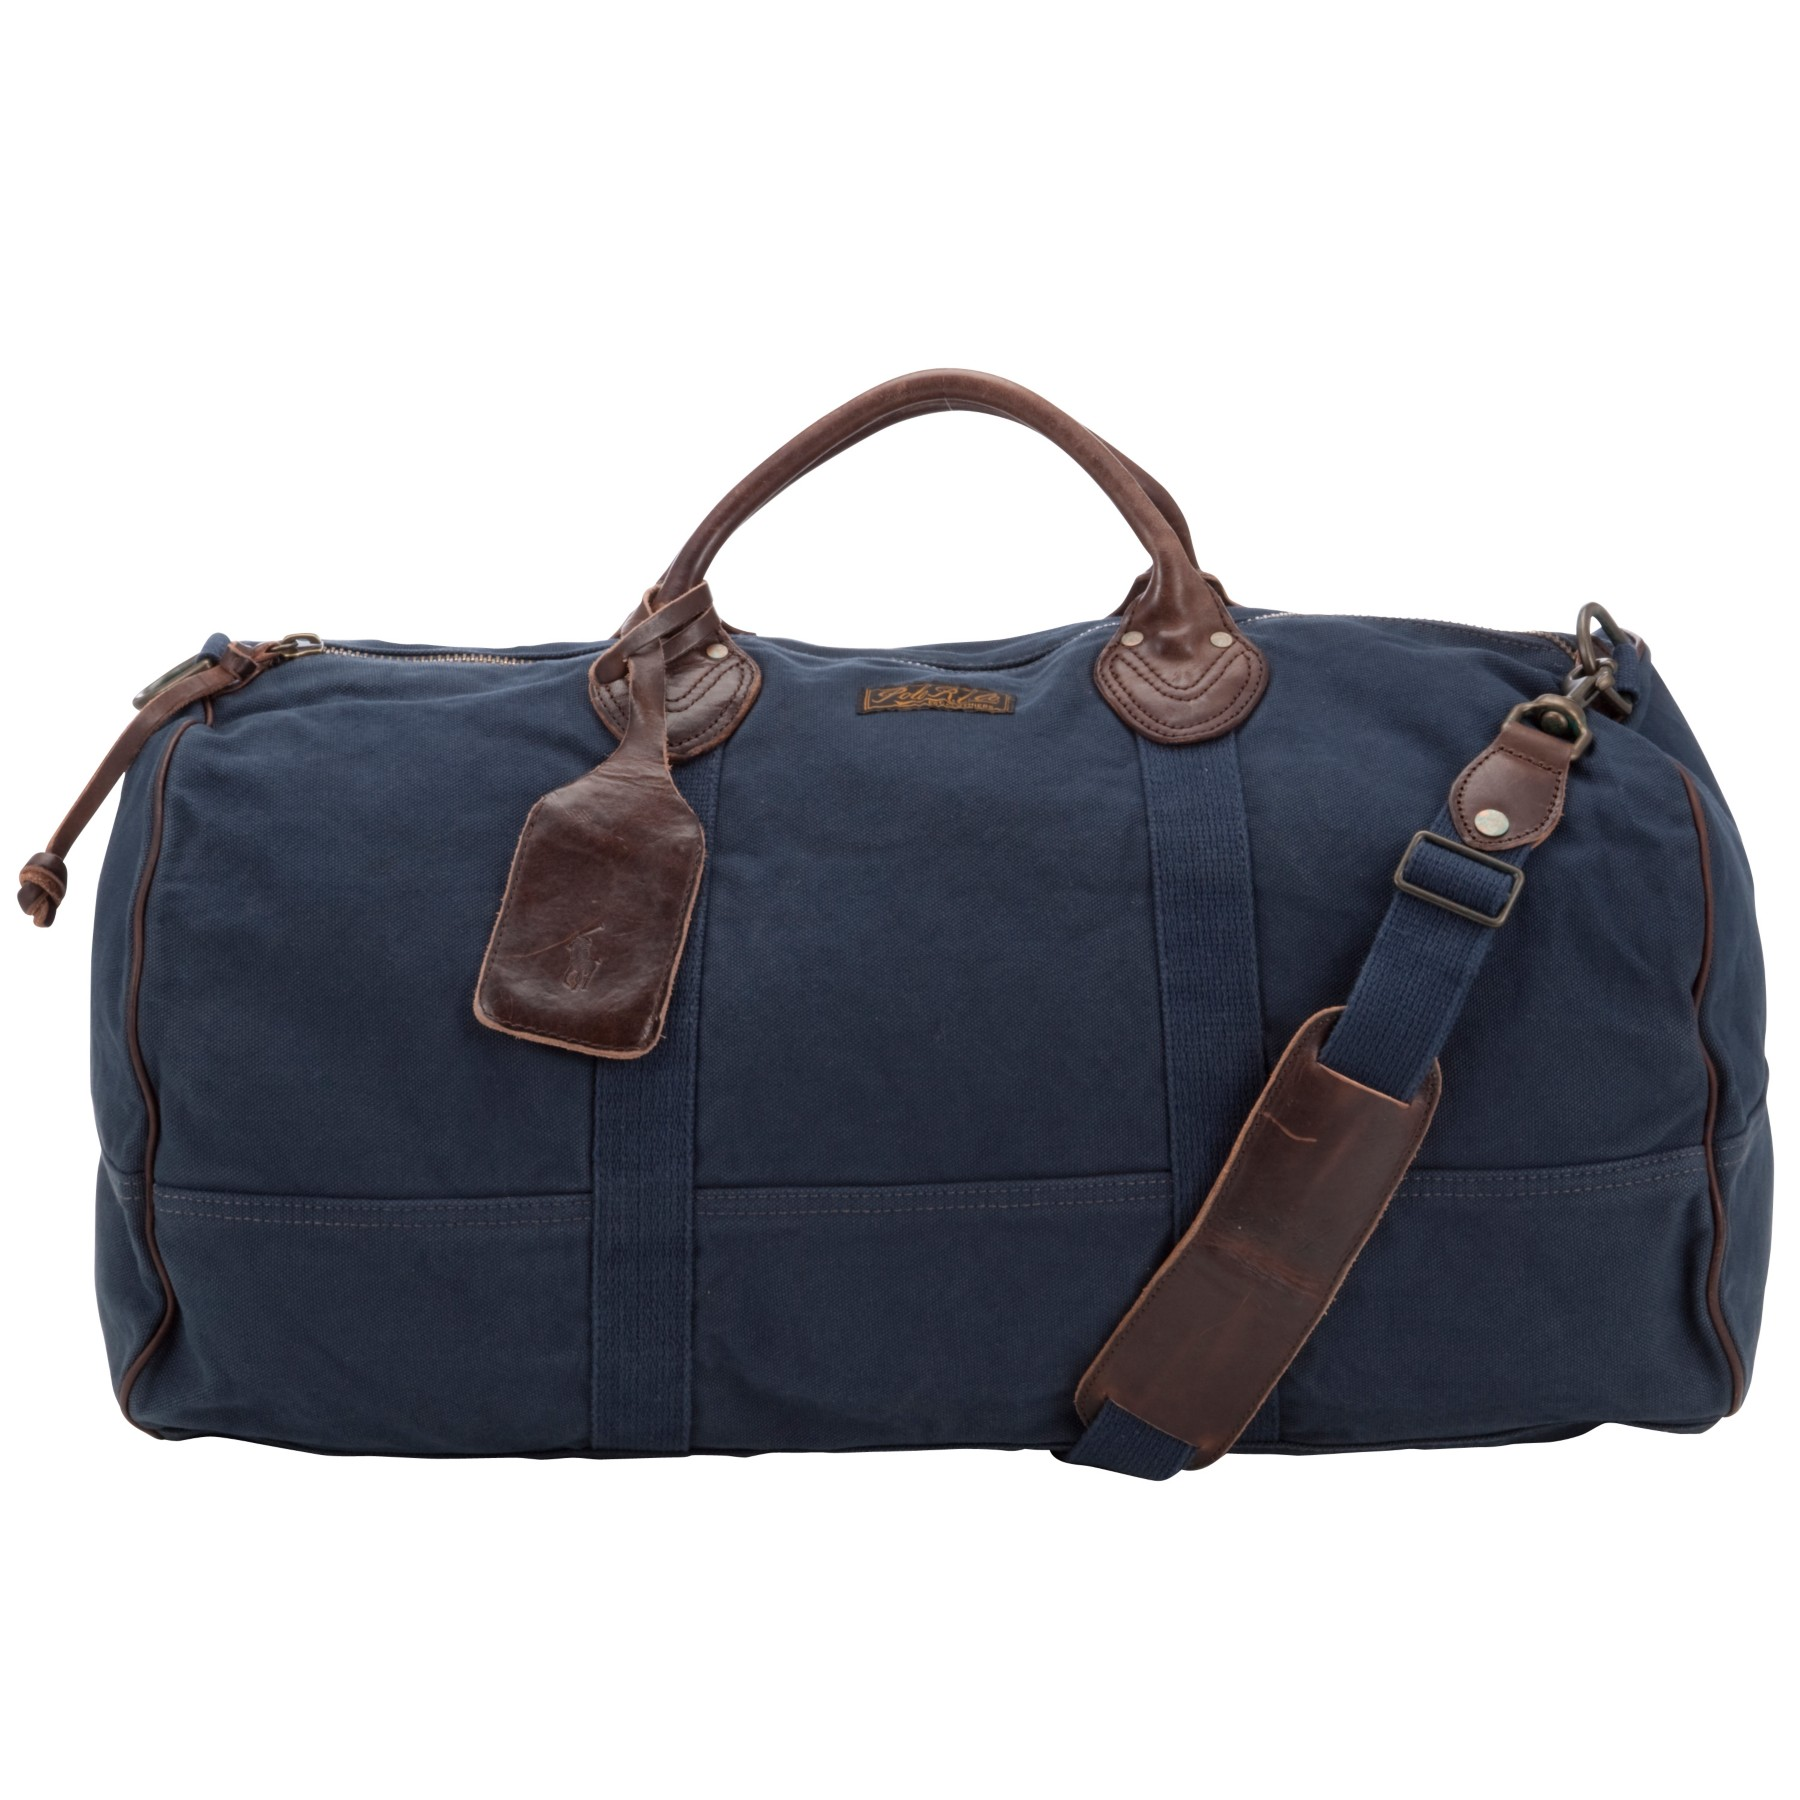 Free shipping BOTH ways on lauren by ralph lauren tate large barrel satchel, from our vast selection of styles. Fast delivery, and 24/7/ real-person service with a smile. Click or call